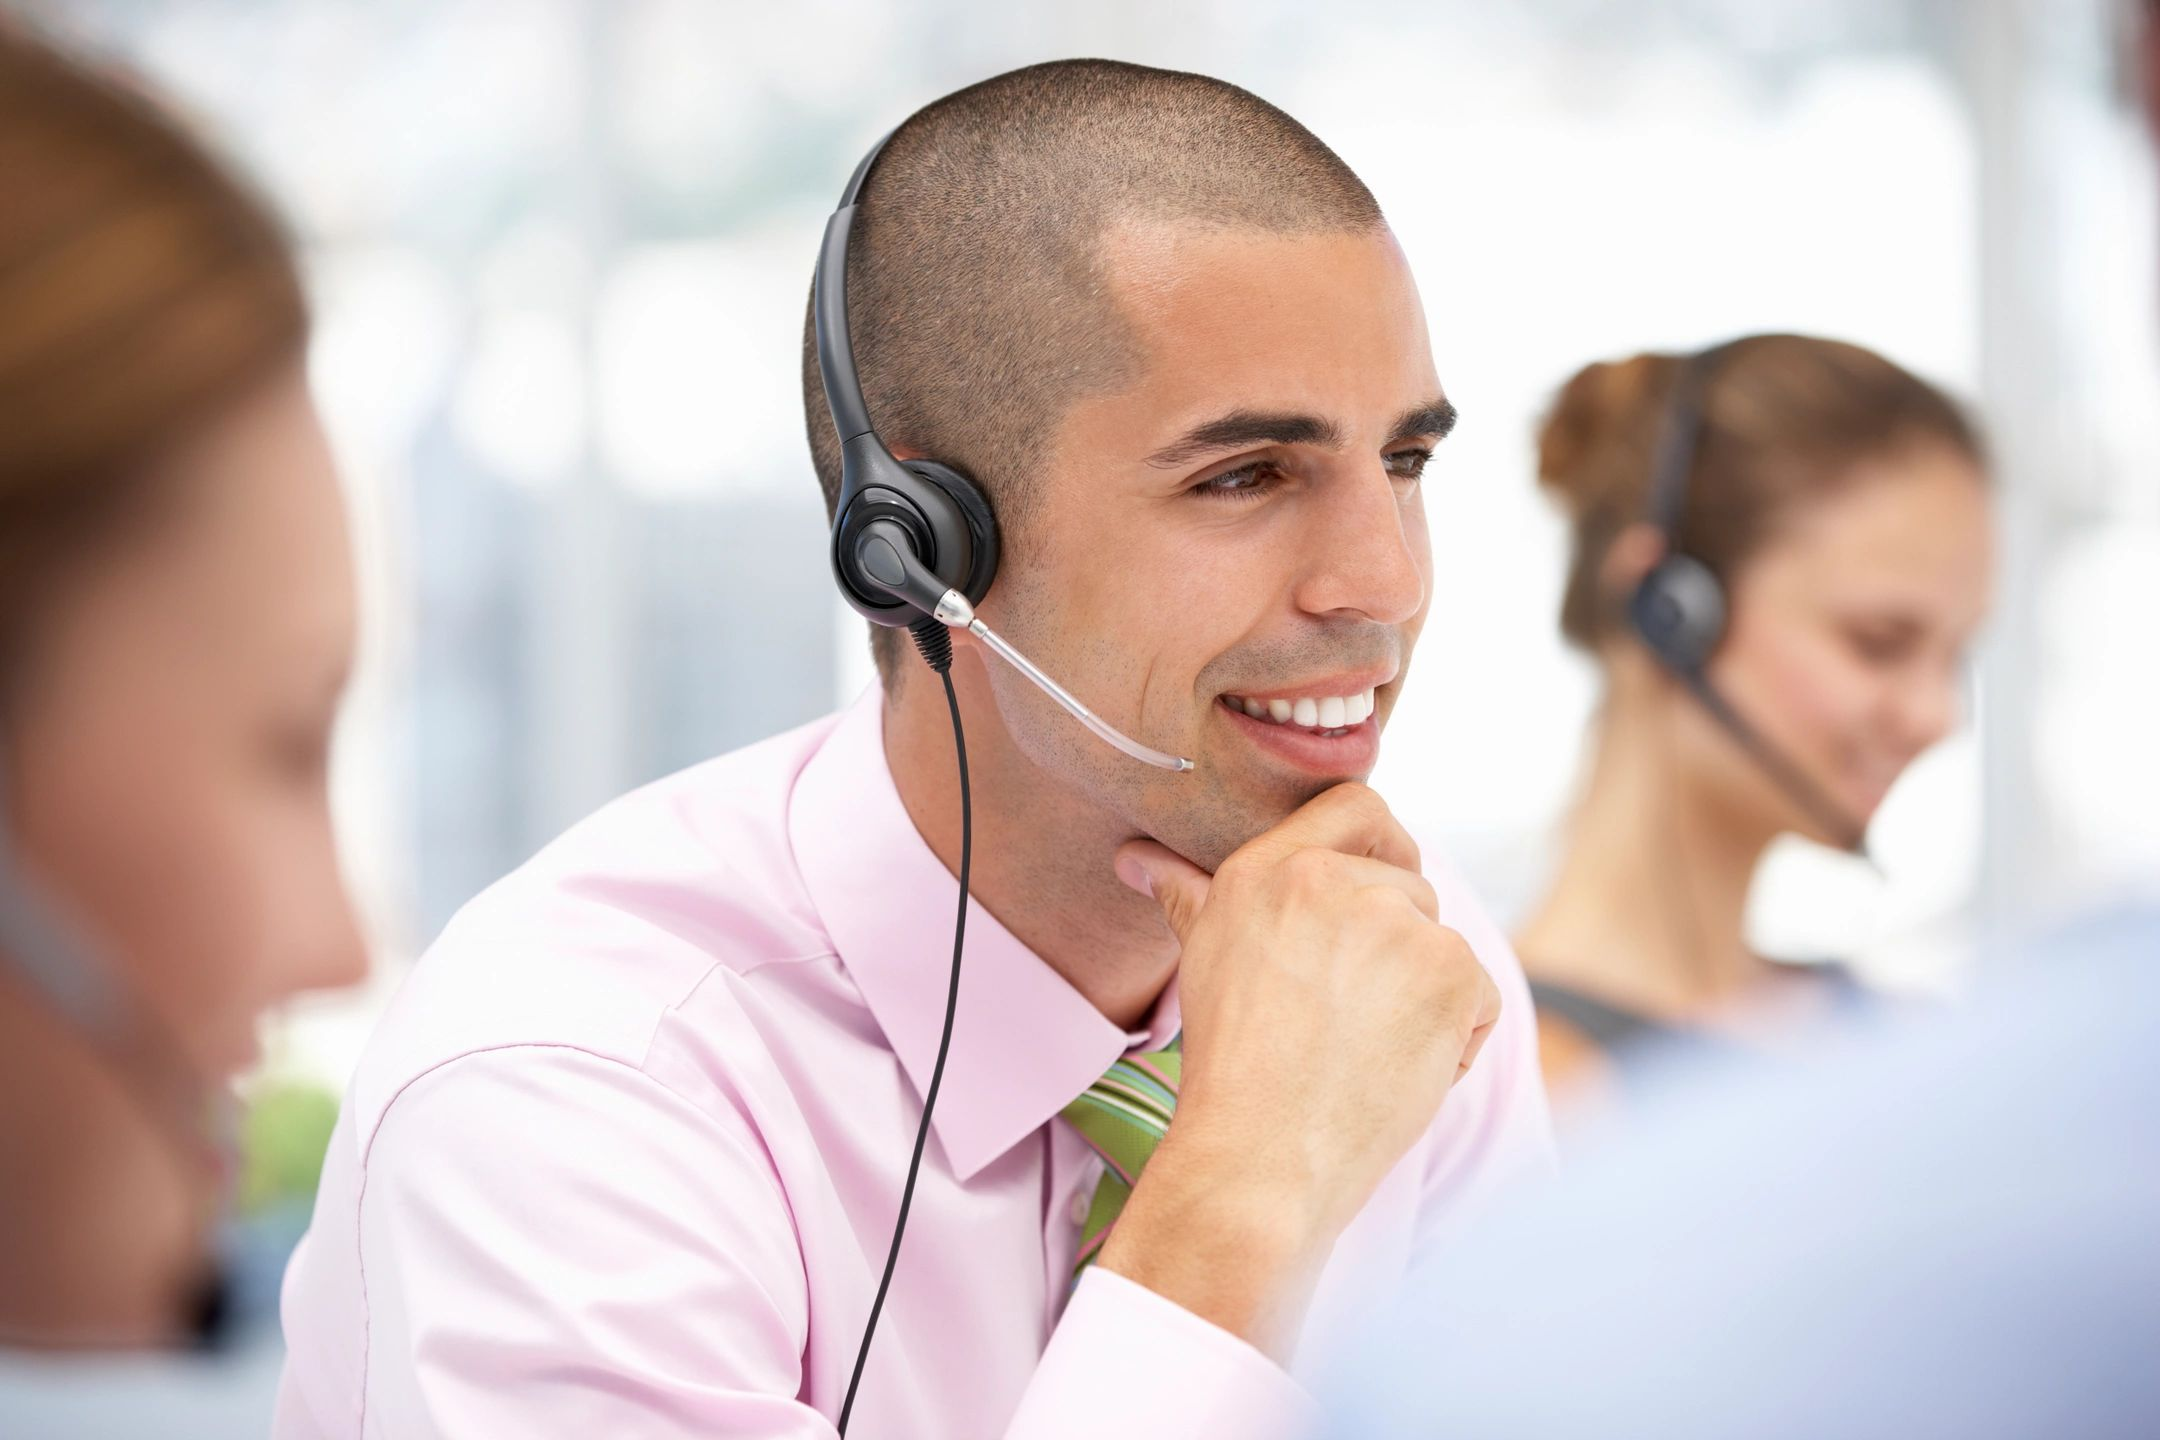 Technical Support Call Center